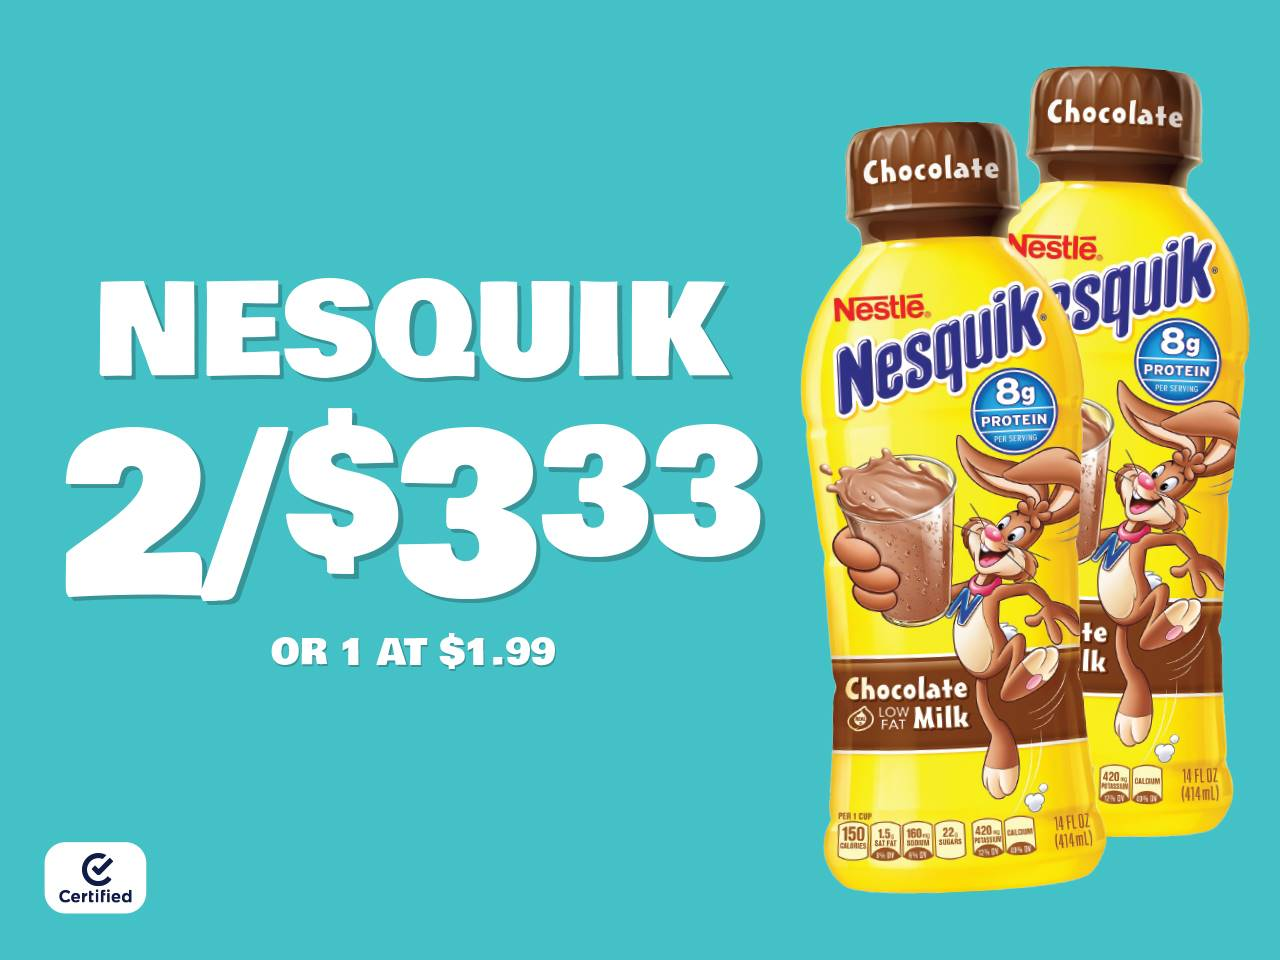 Nesquik 2 for $3.33 or 1 at $1.99